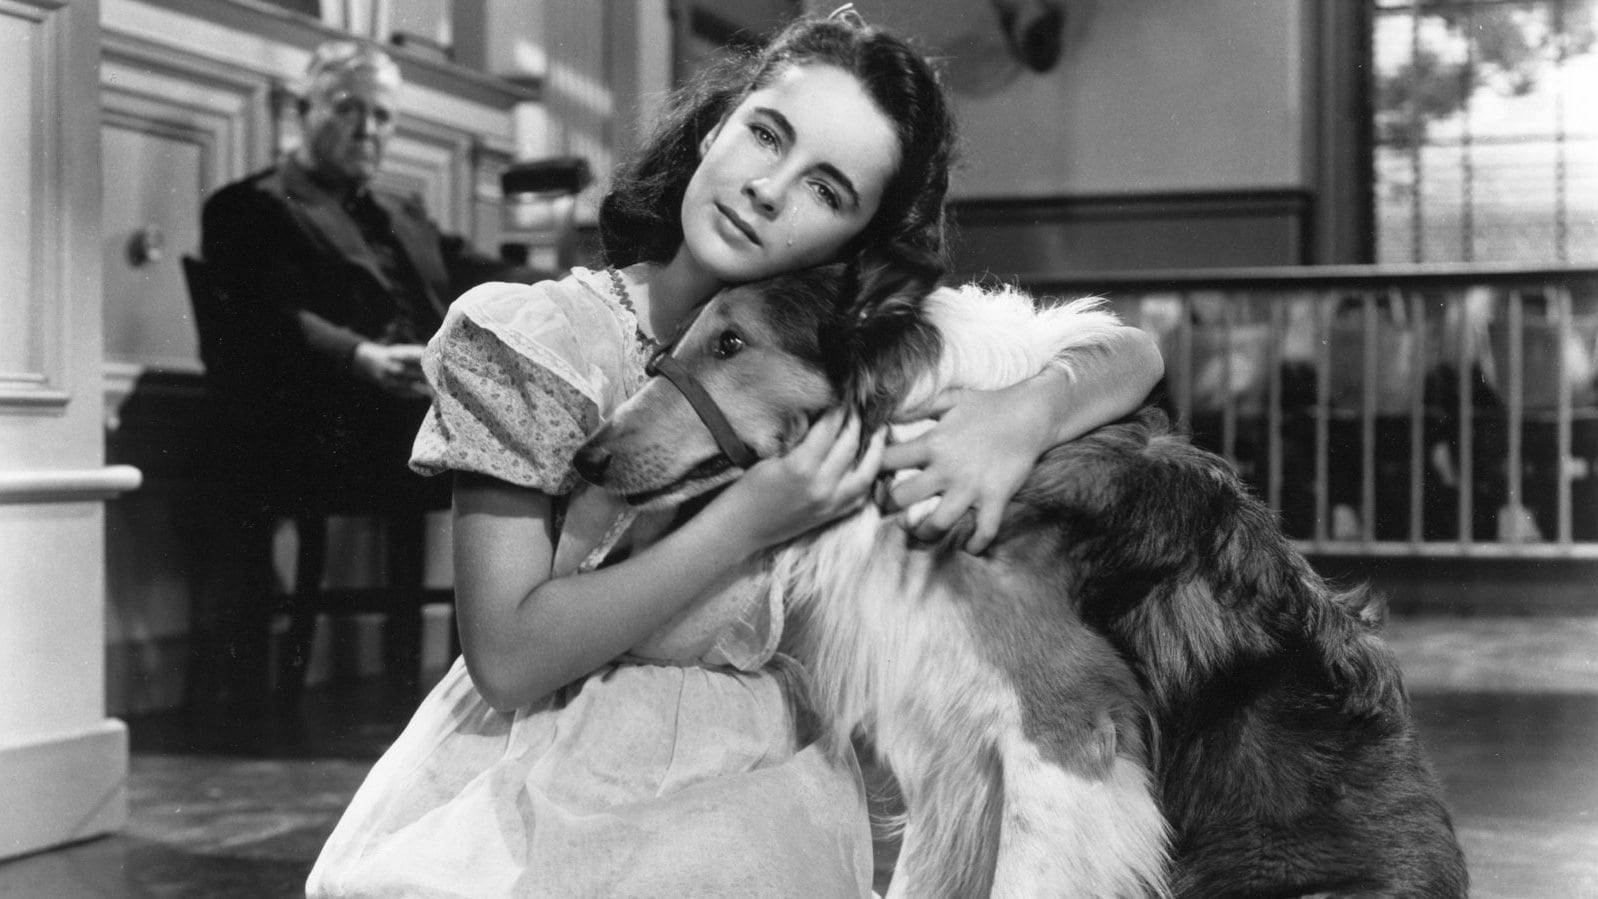 Elizabeth in one of her Child Actress Roles